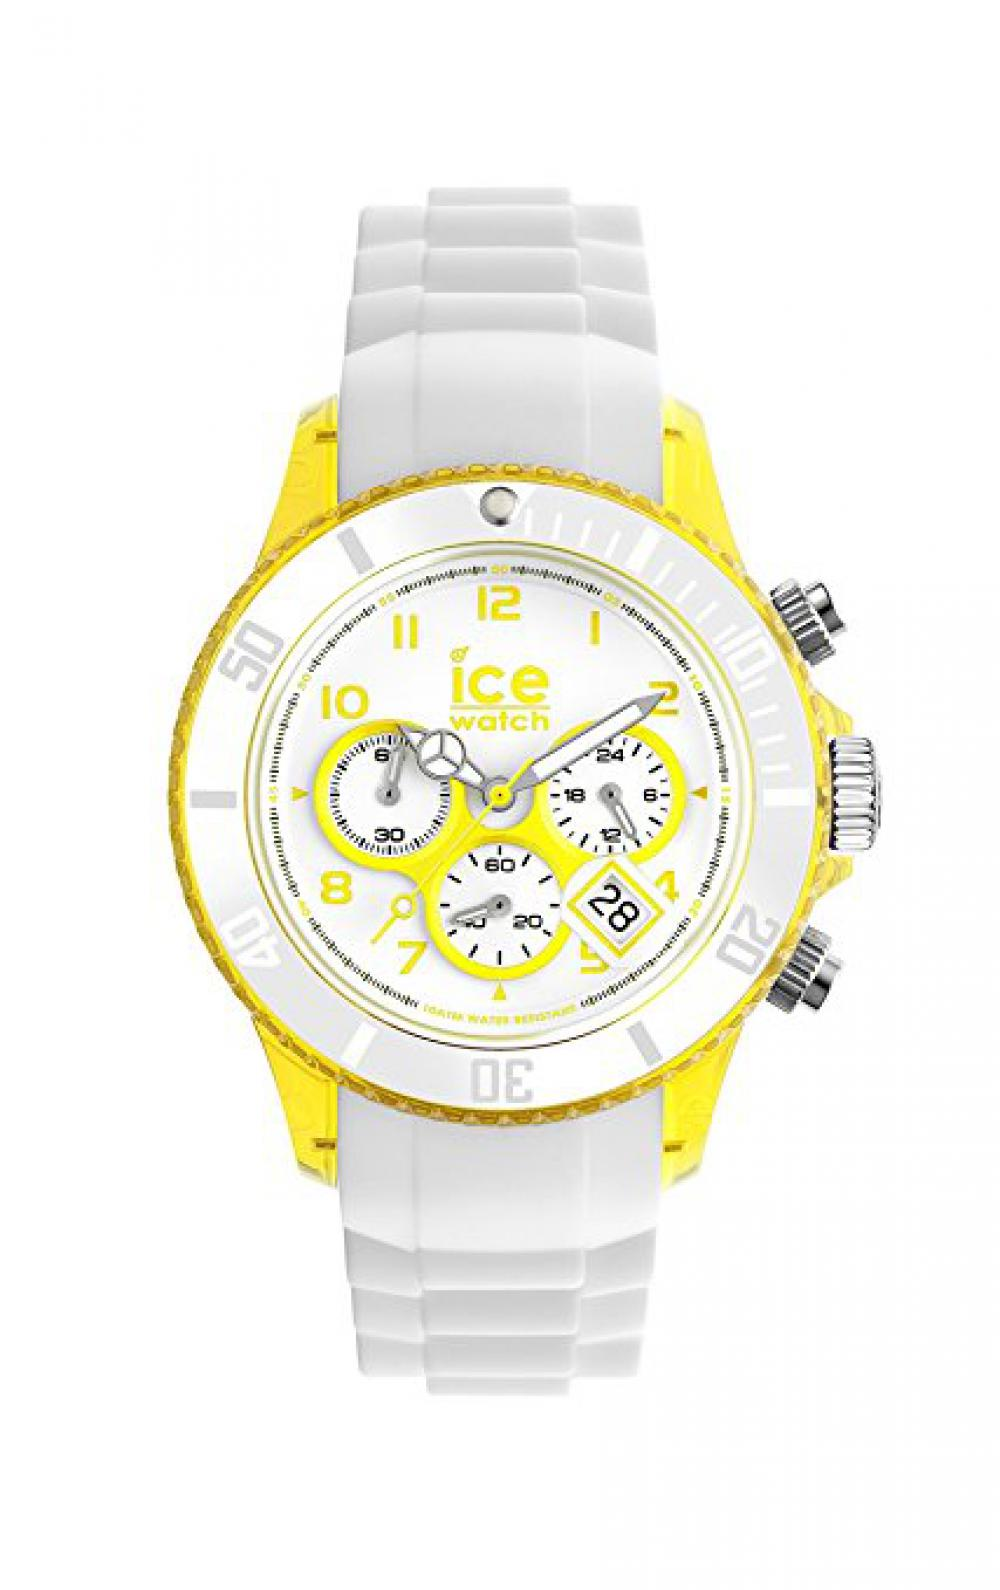 ICE WATCH CHRONO Party Magarita Unisex